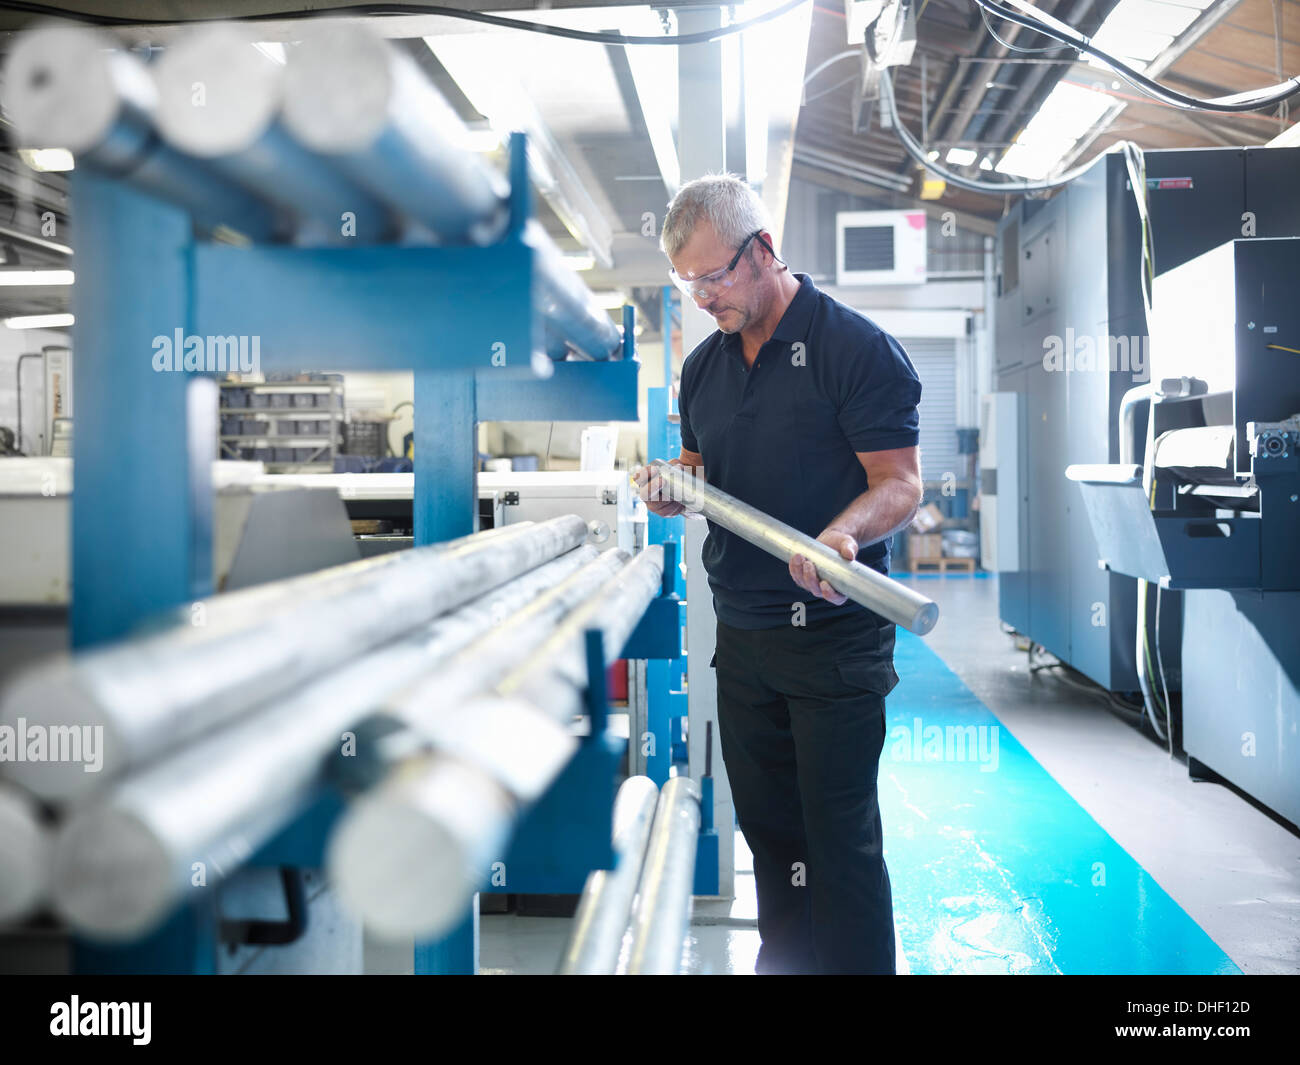 Engineer working with aluminium in factory - Stock Image